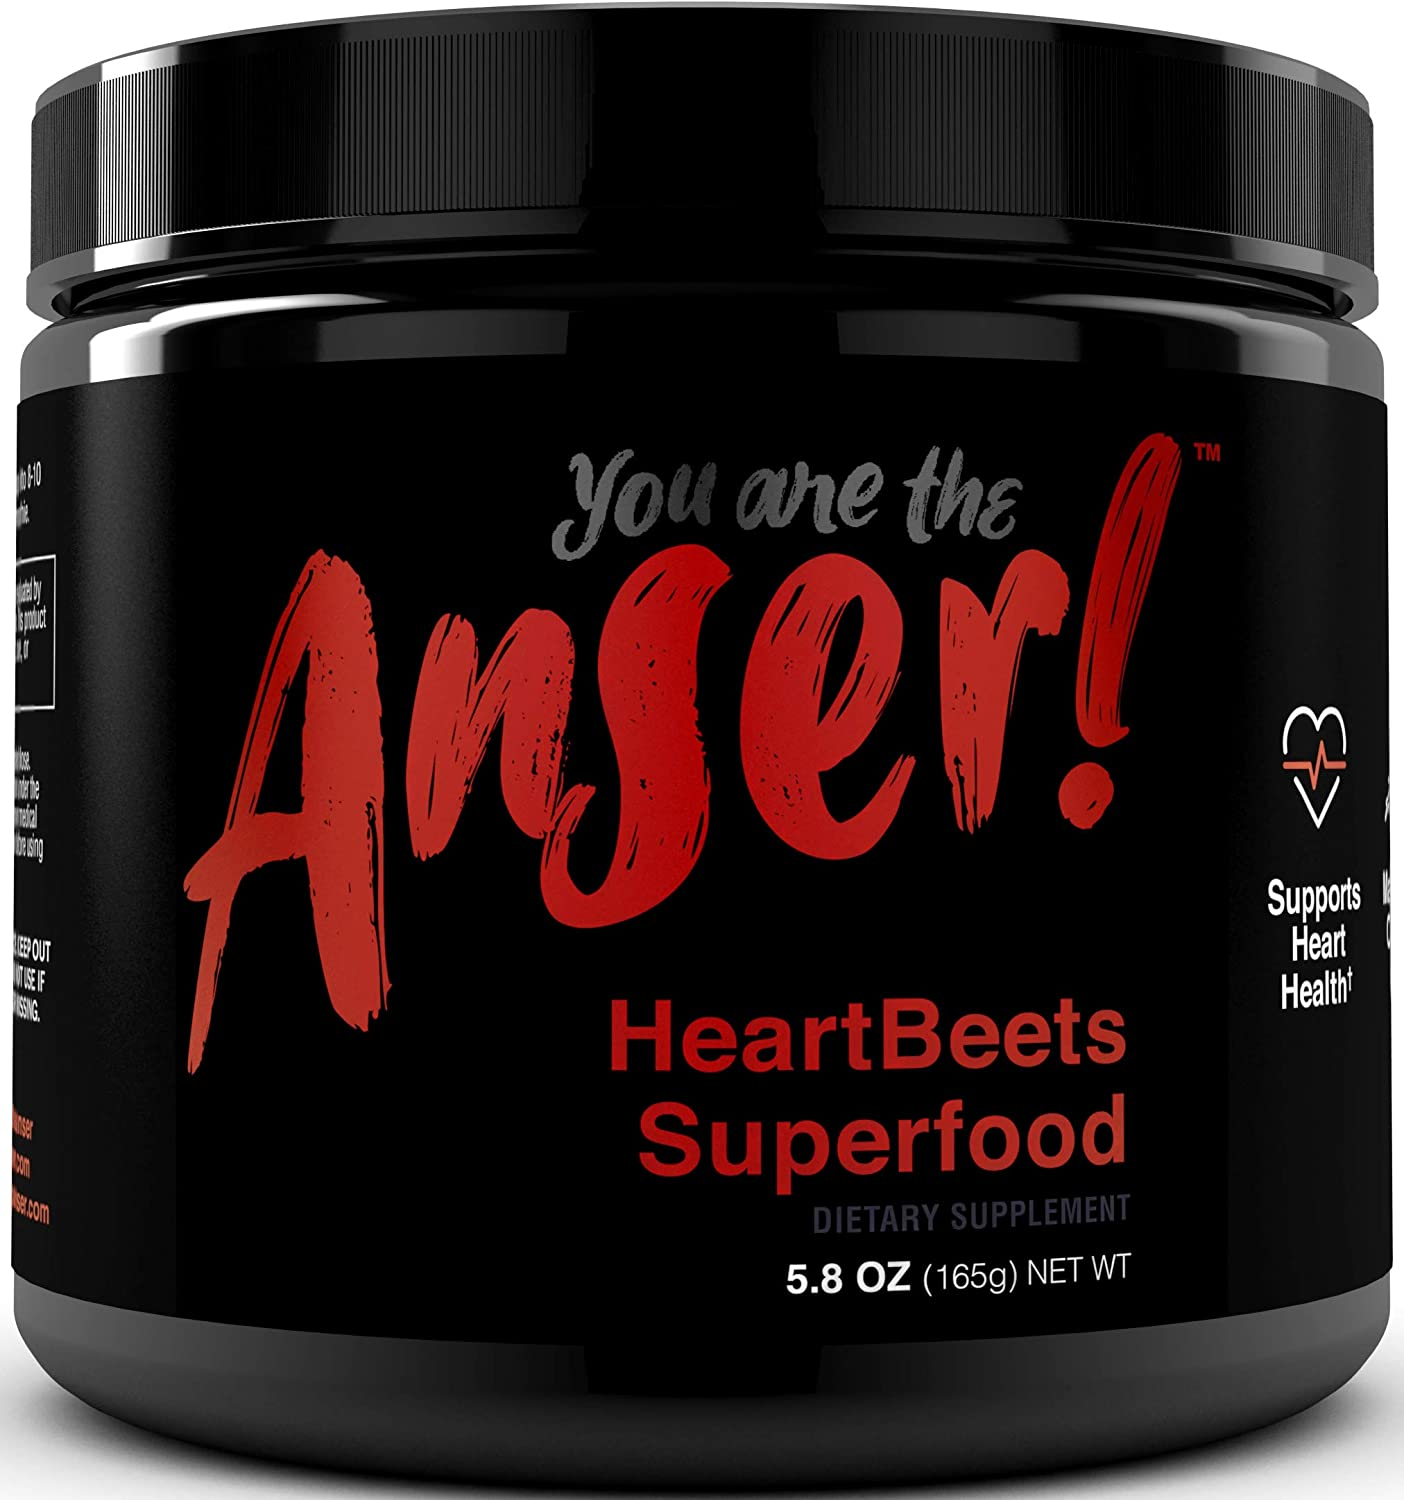 Beet Root Powder with Vitamin C discount Supports Antioxidant - Lowest price challenge Blend and